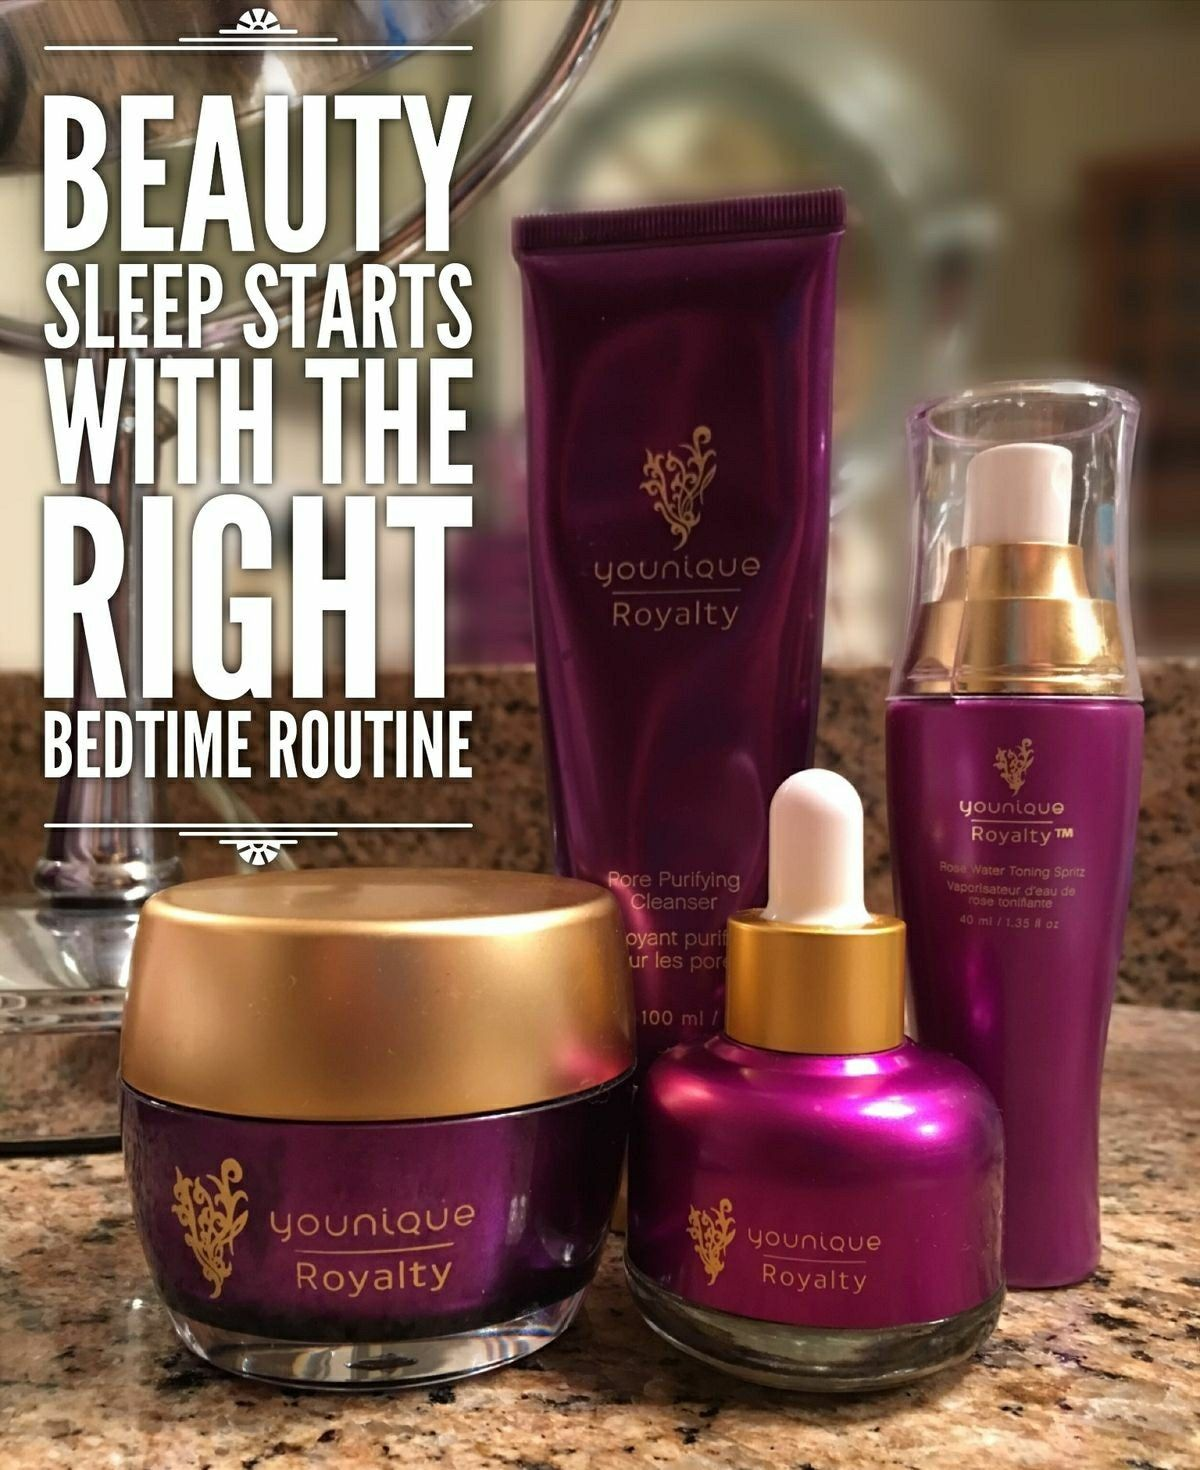 #Beauty Sleep Starts With The Right #Bedtime #Routine ~ #Younique #Royalty